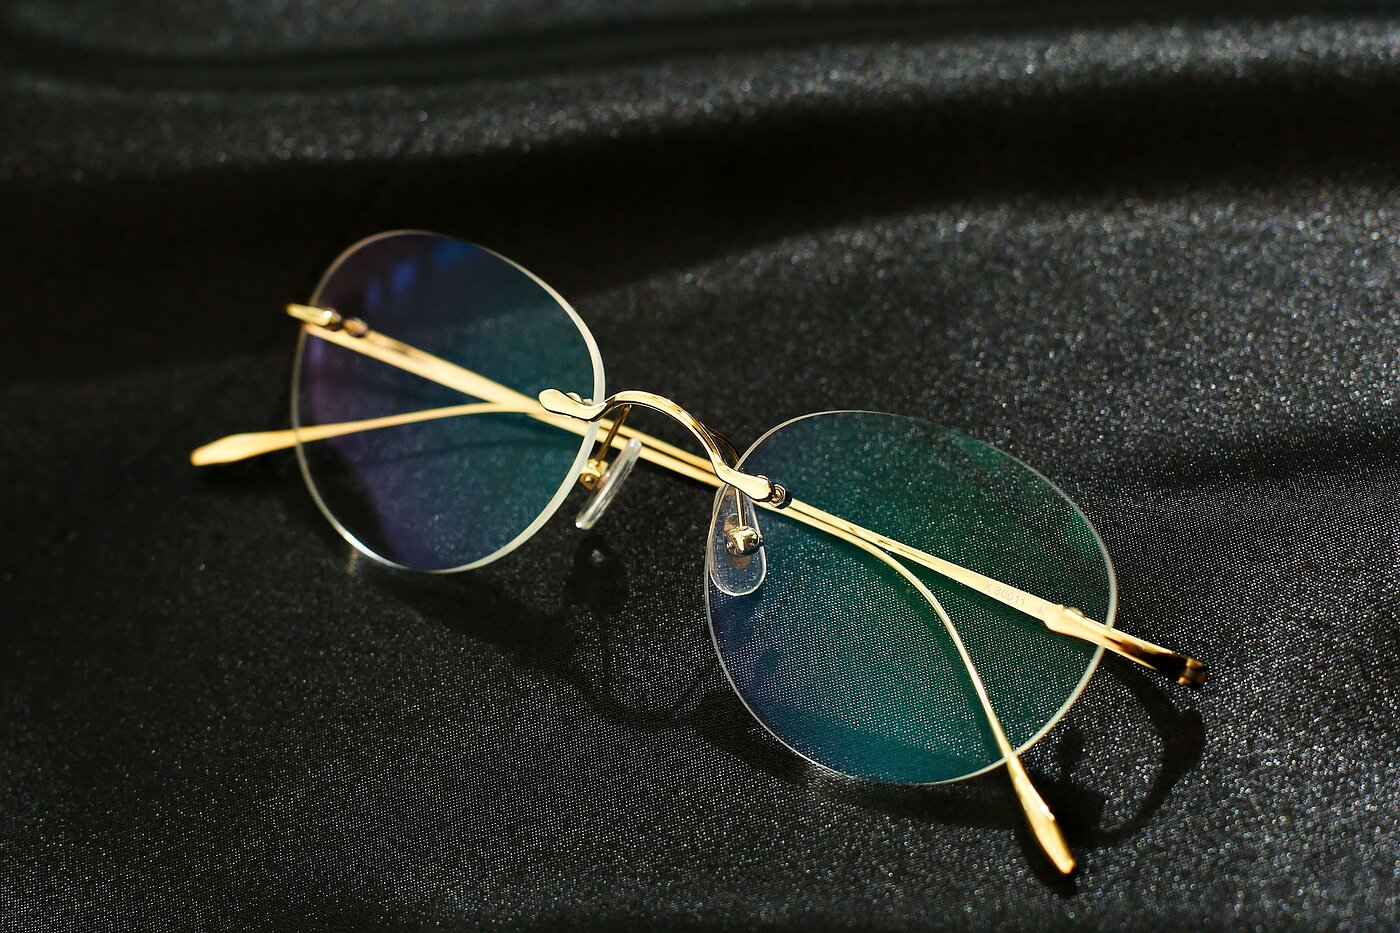 Gold Lightweight Titanium Rimless Eyeglasses